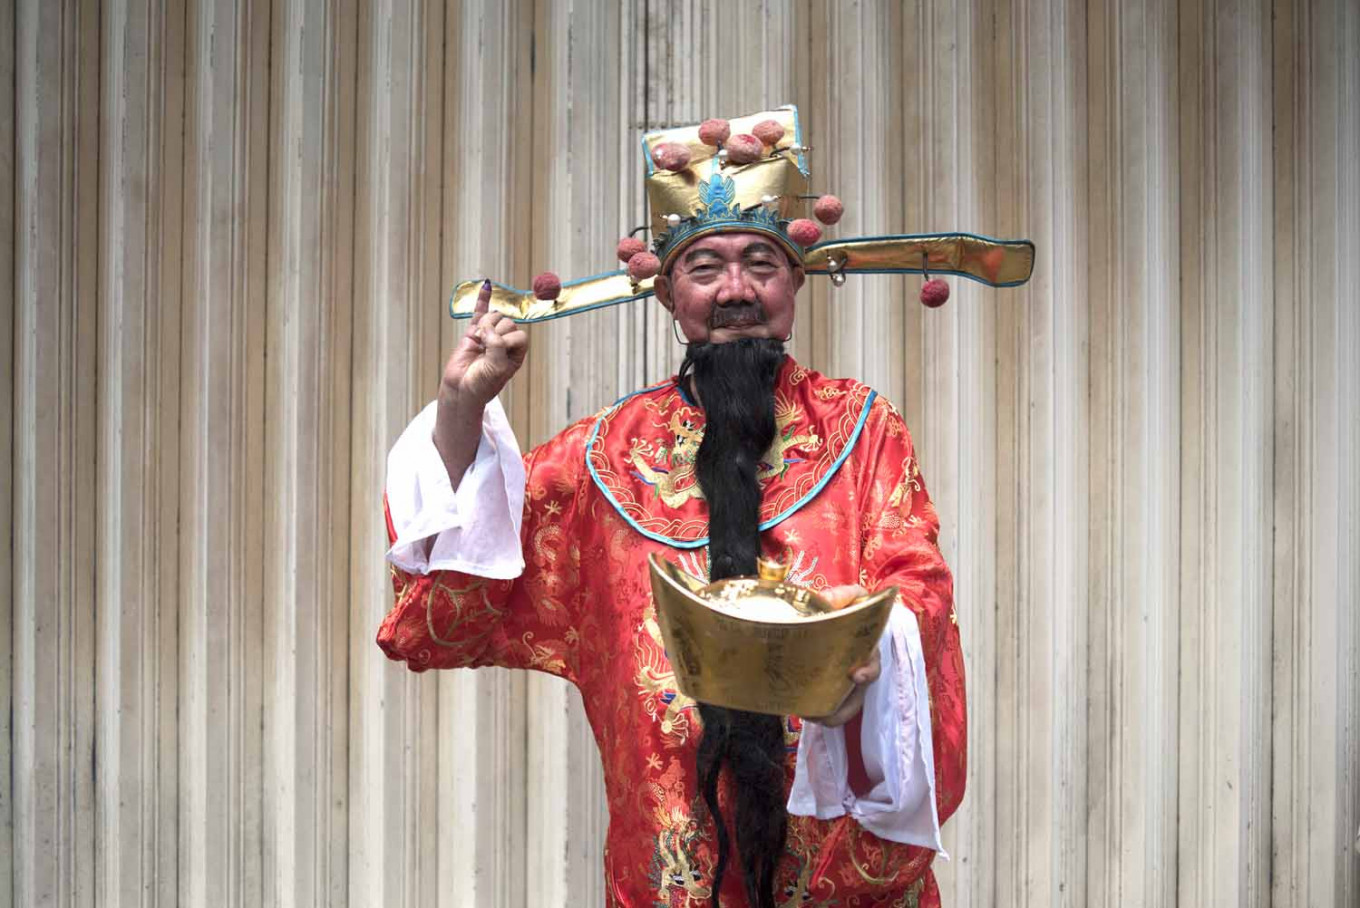 Jay Sen Ye wears a Prosperity God costume for the first time during the election. JP/Rosa Panggabean